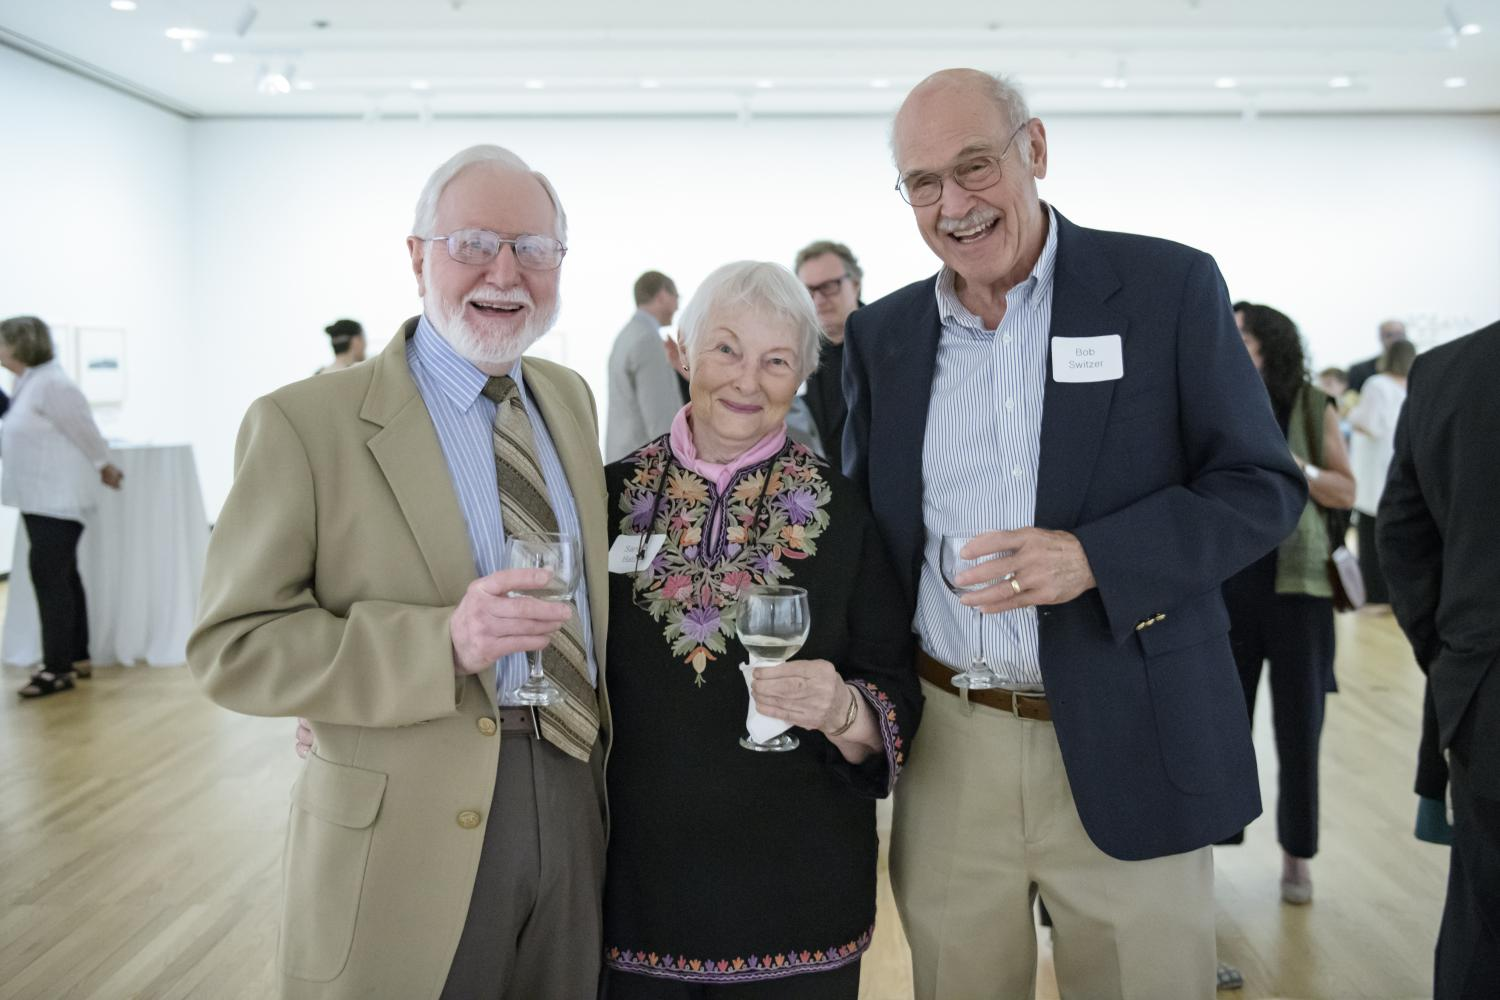 Longtime supporters of Krannert Art Museum George and Sandra Batzli and Bob Switzer celebrate the museum's successful fundraising efforts, 2018. Photo by Della Perrone.